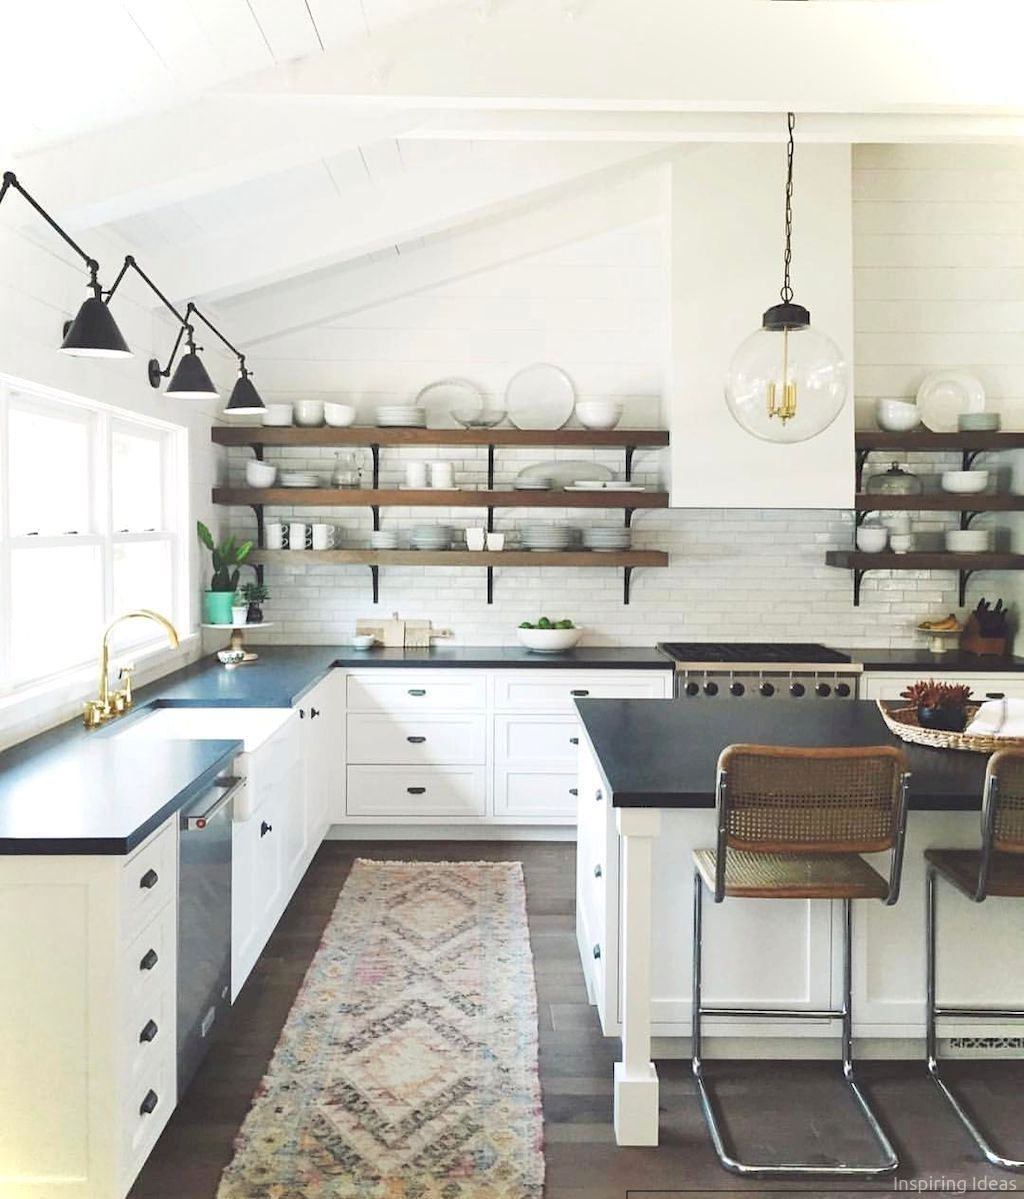 small apartment kitchen ideas on a budget 8 farmhouse kitchen decor modern farmhouse on farmhouse kitchen on a budget id=33770